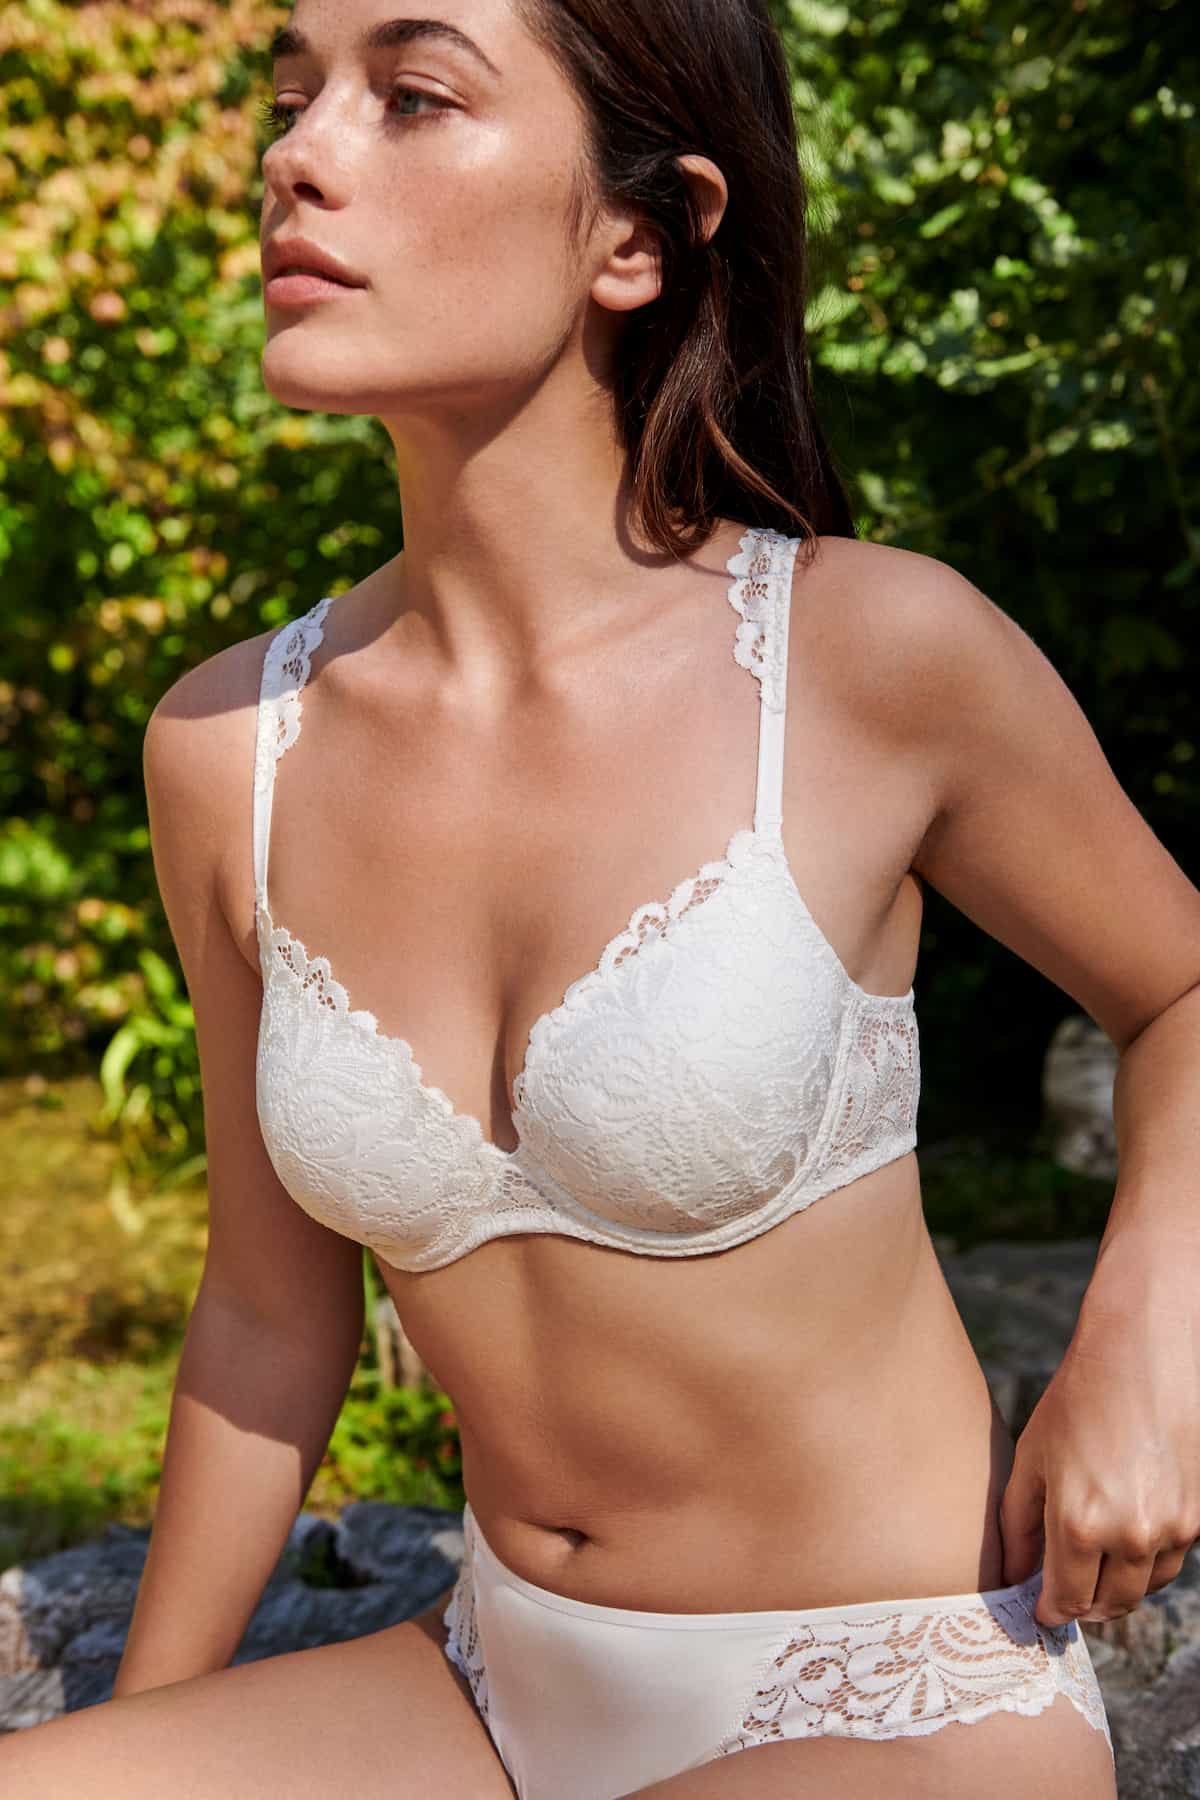 Dessous Marie Jo Modell Elis, Farbe Natural (Weiß) - Mode 2021